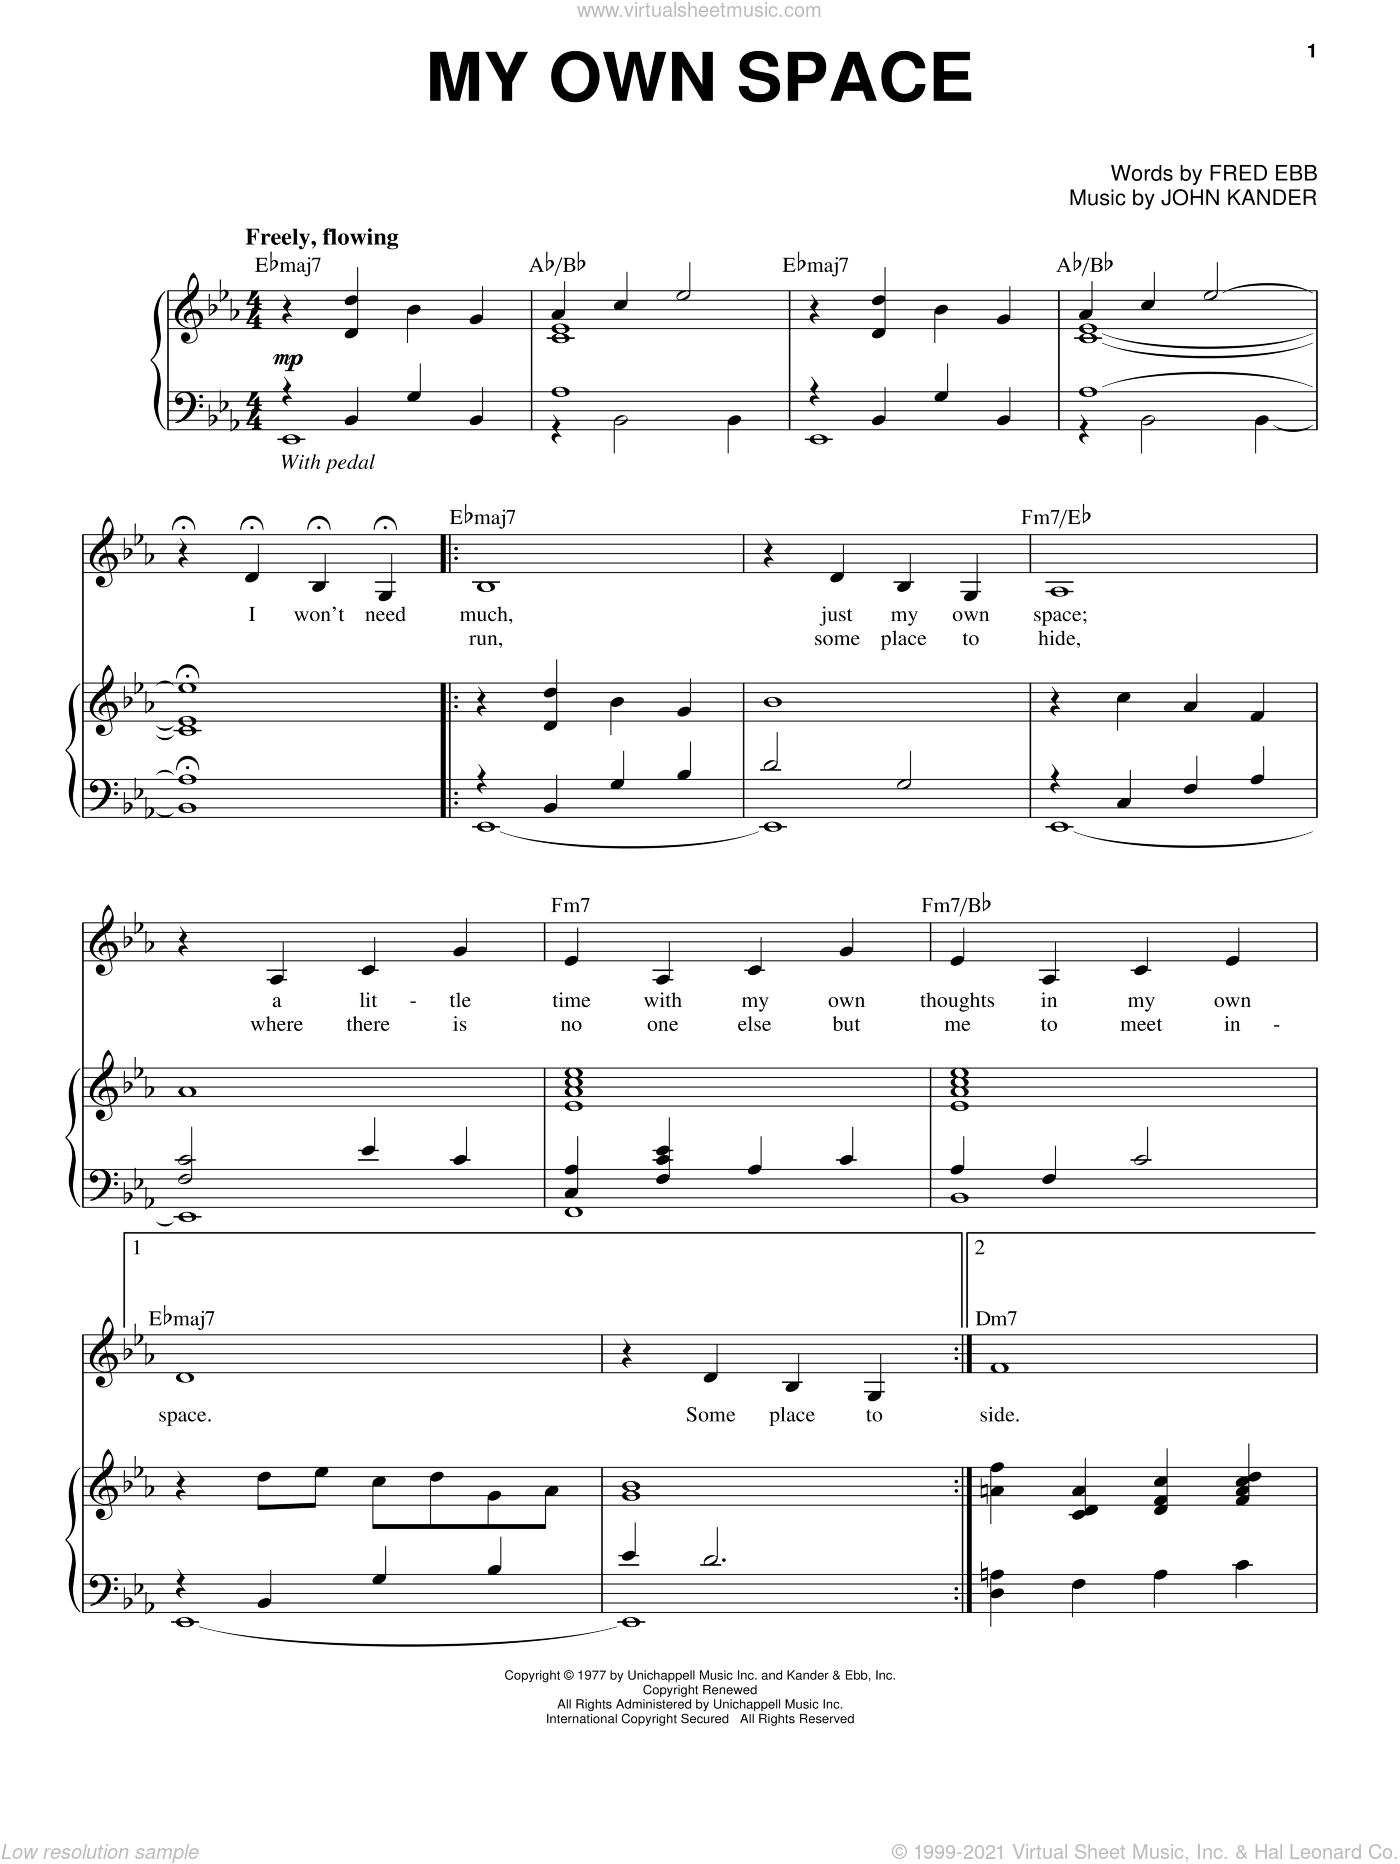 My Own Space sheet music for voice and piano by Liza Minnelli, Kander & Ebb, Fred Ebb and John Kander, intermediate skill level